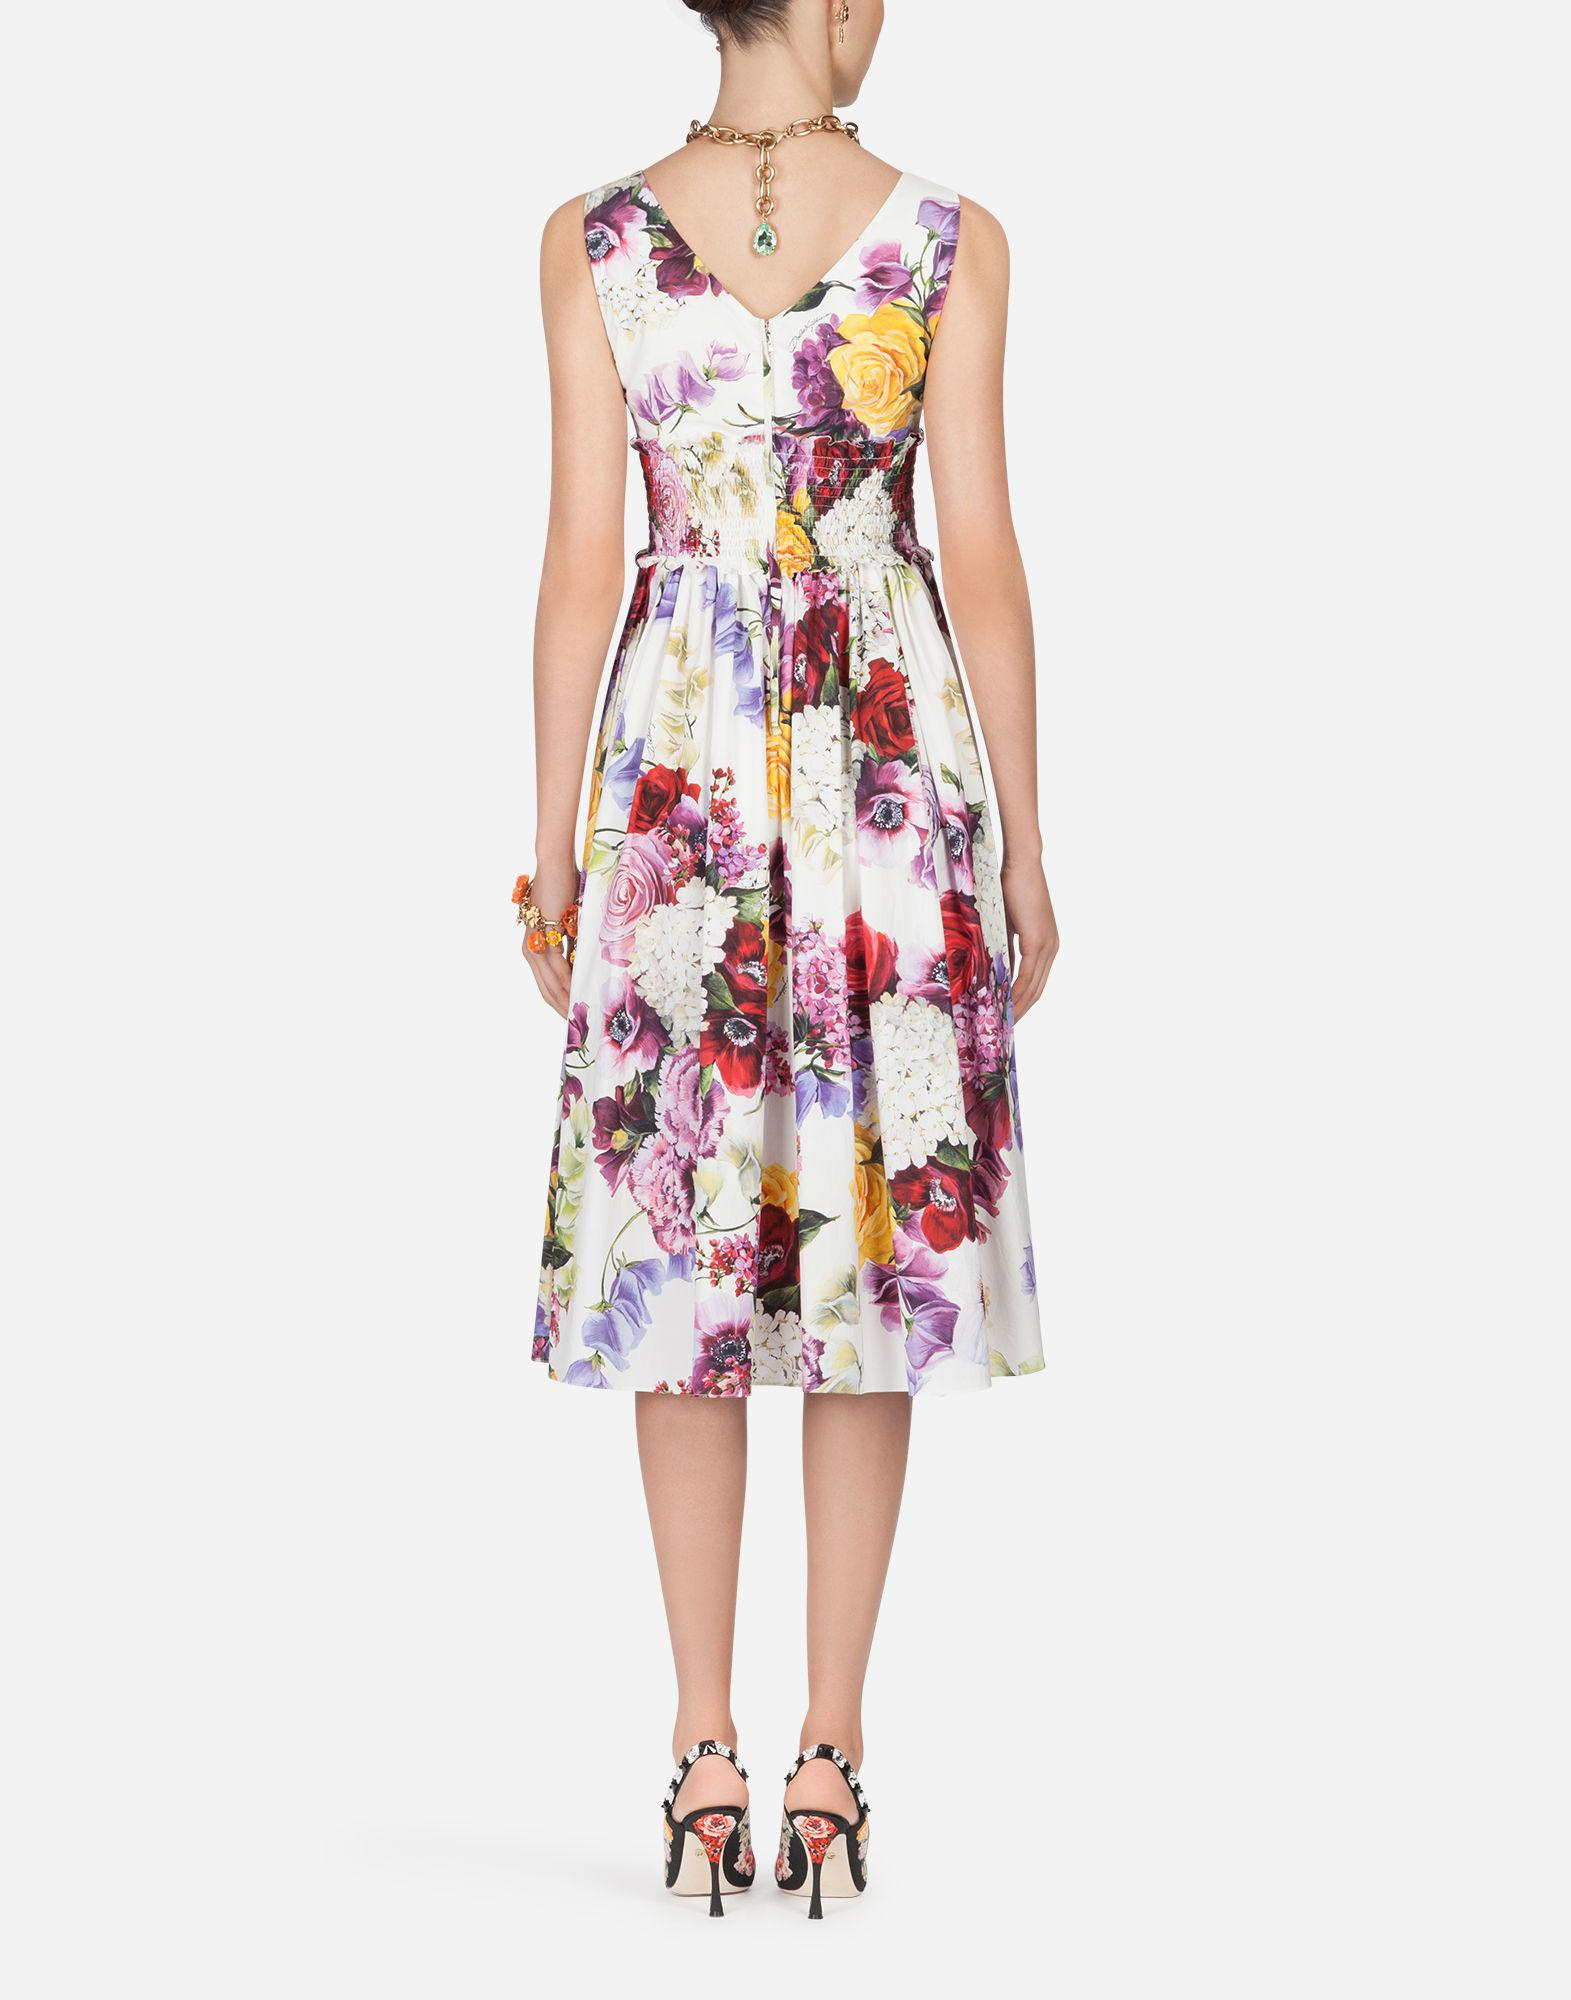 Lyst - Dolce   Gabbana Printed Cotton Dress - Save 44% 3c640c3e1